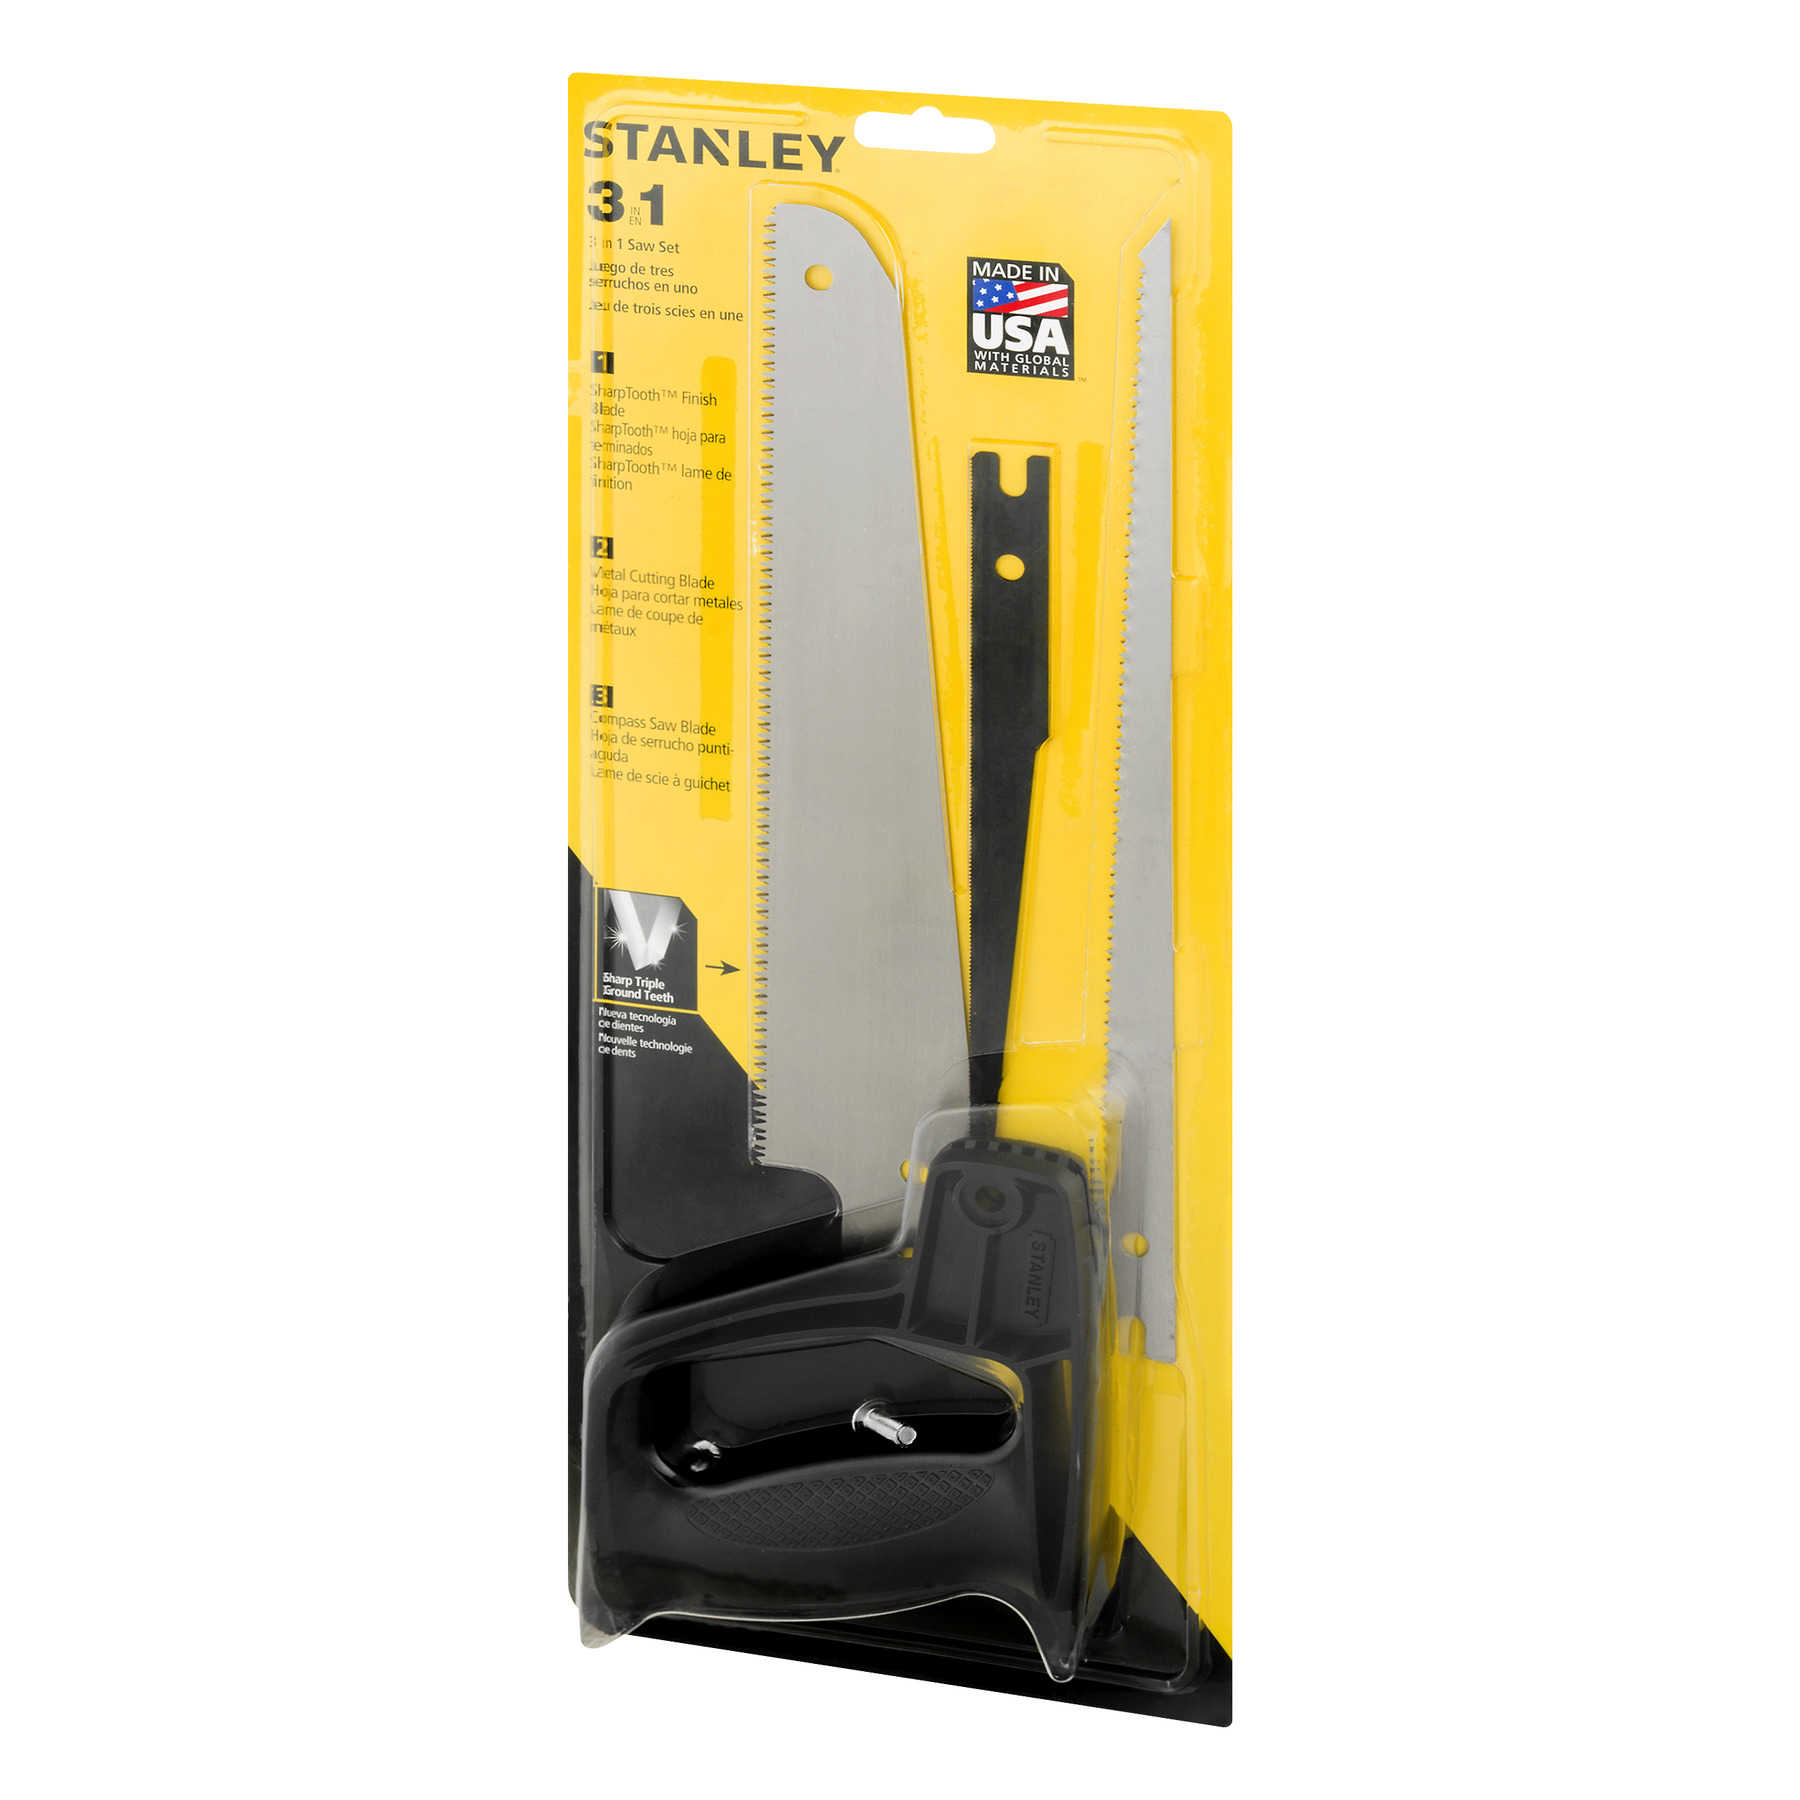 Stanley 3 IN 1 Saw Set, 1.0 CT